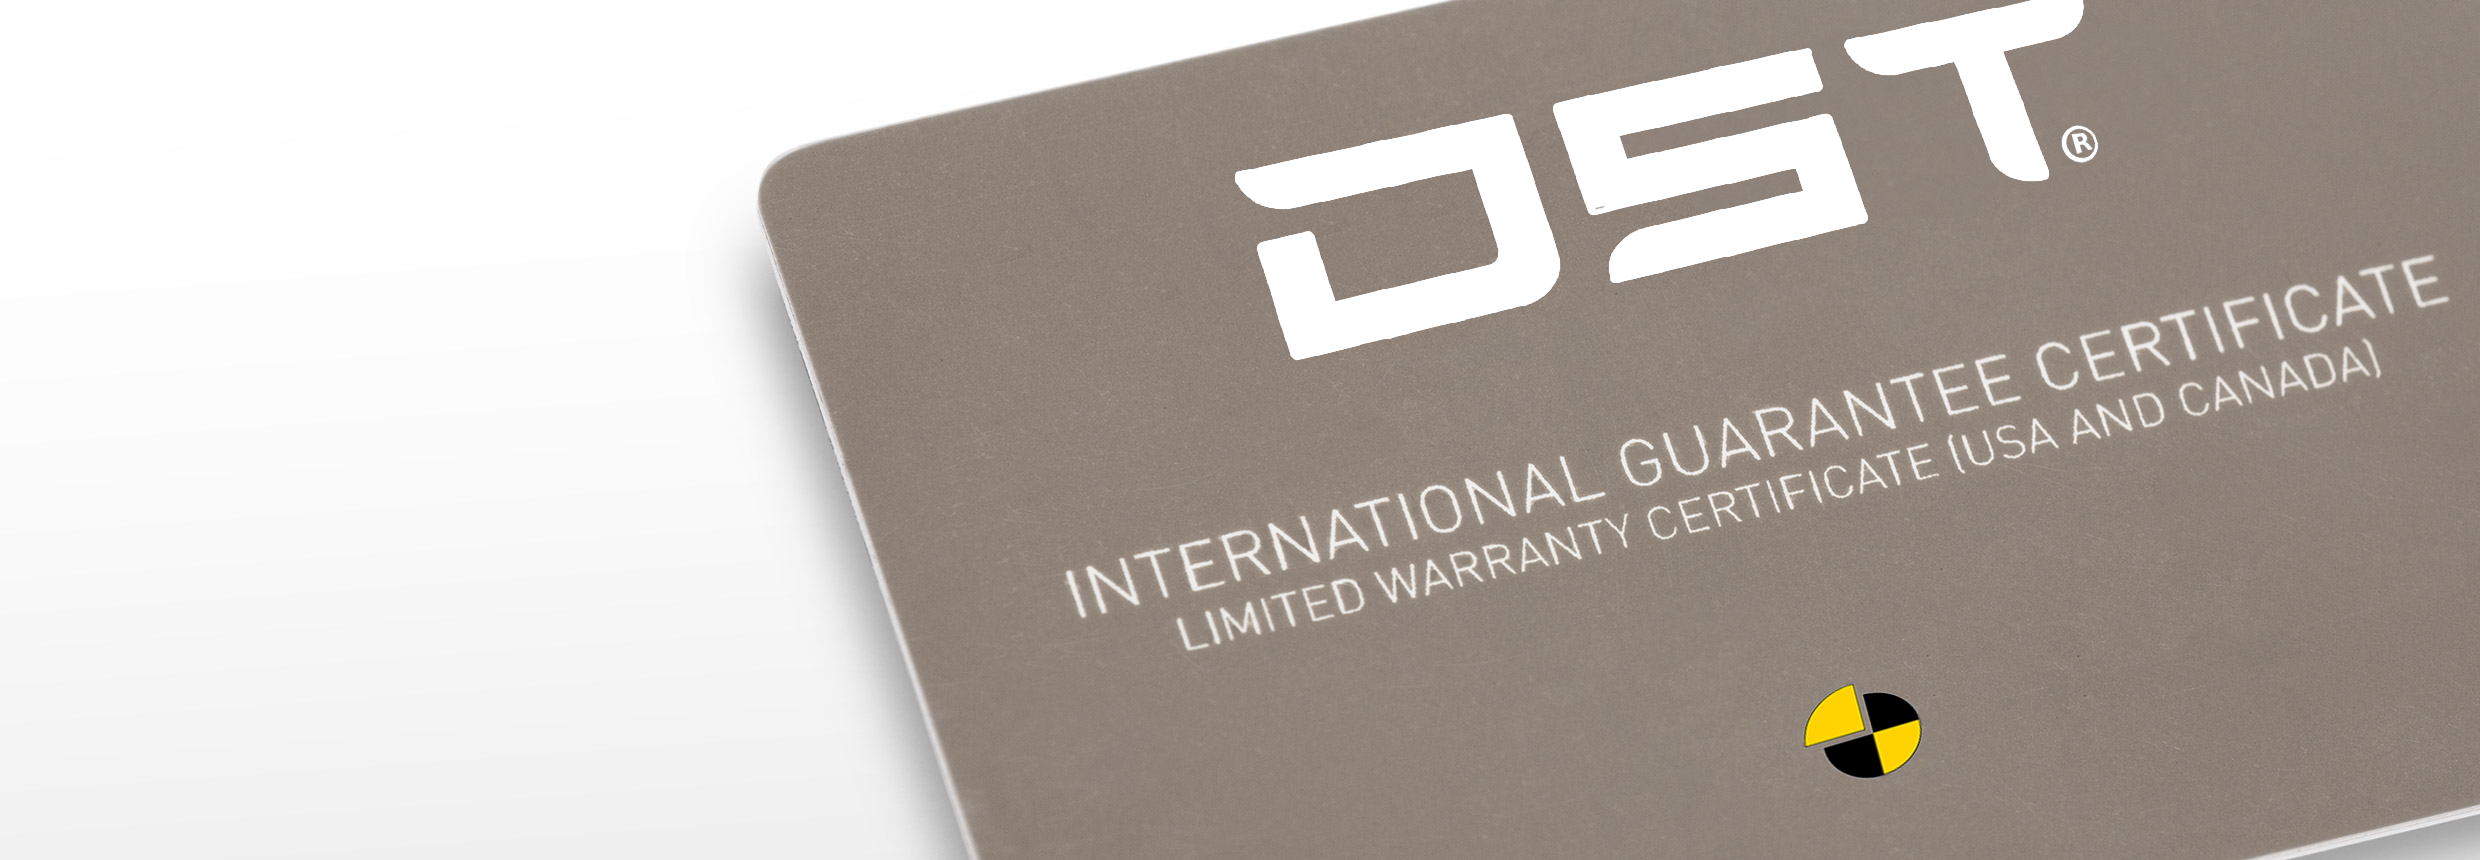 DSS card.png